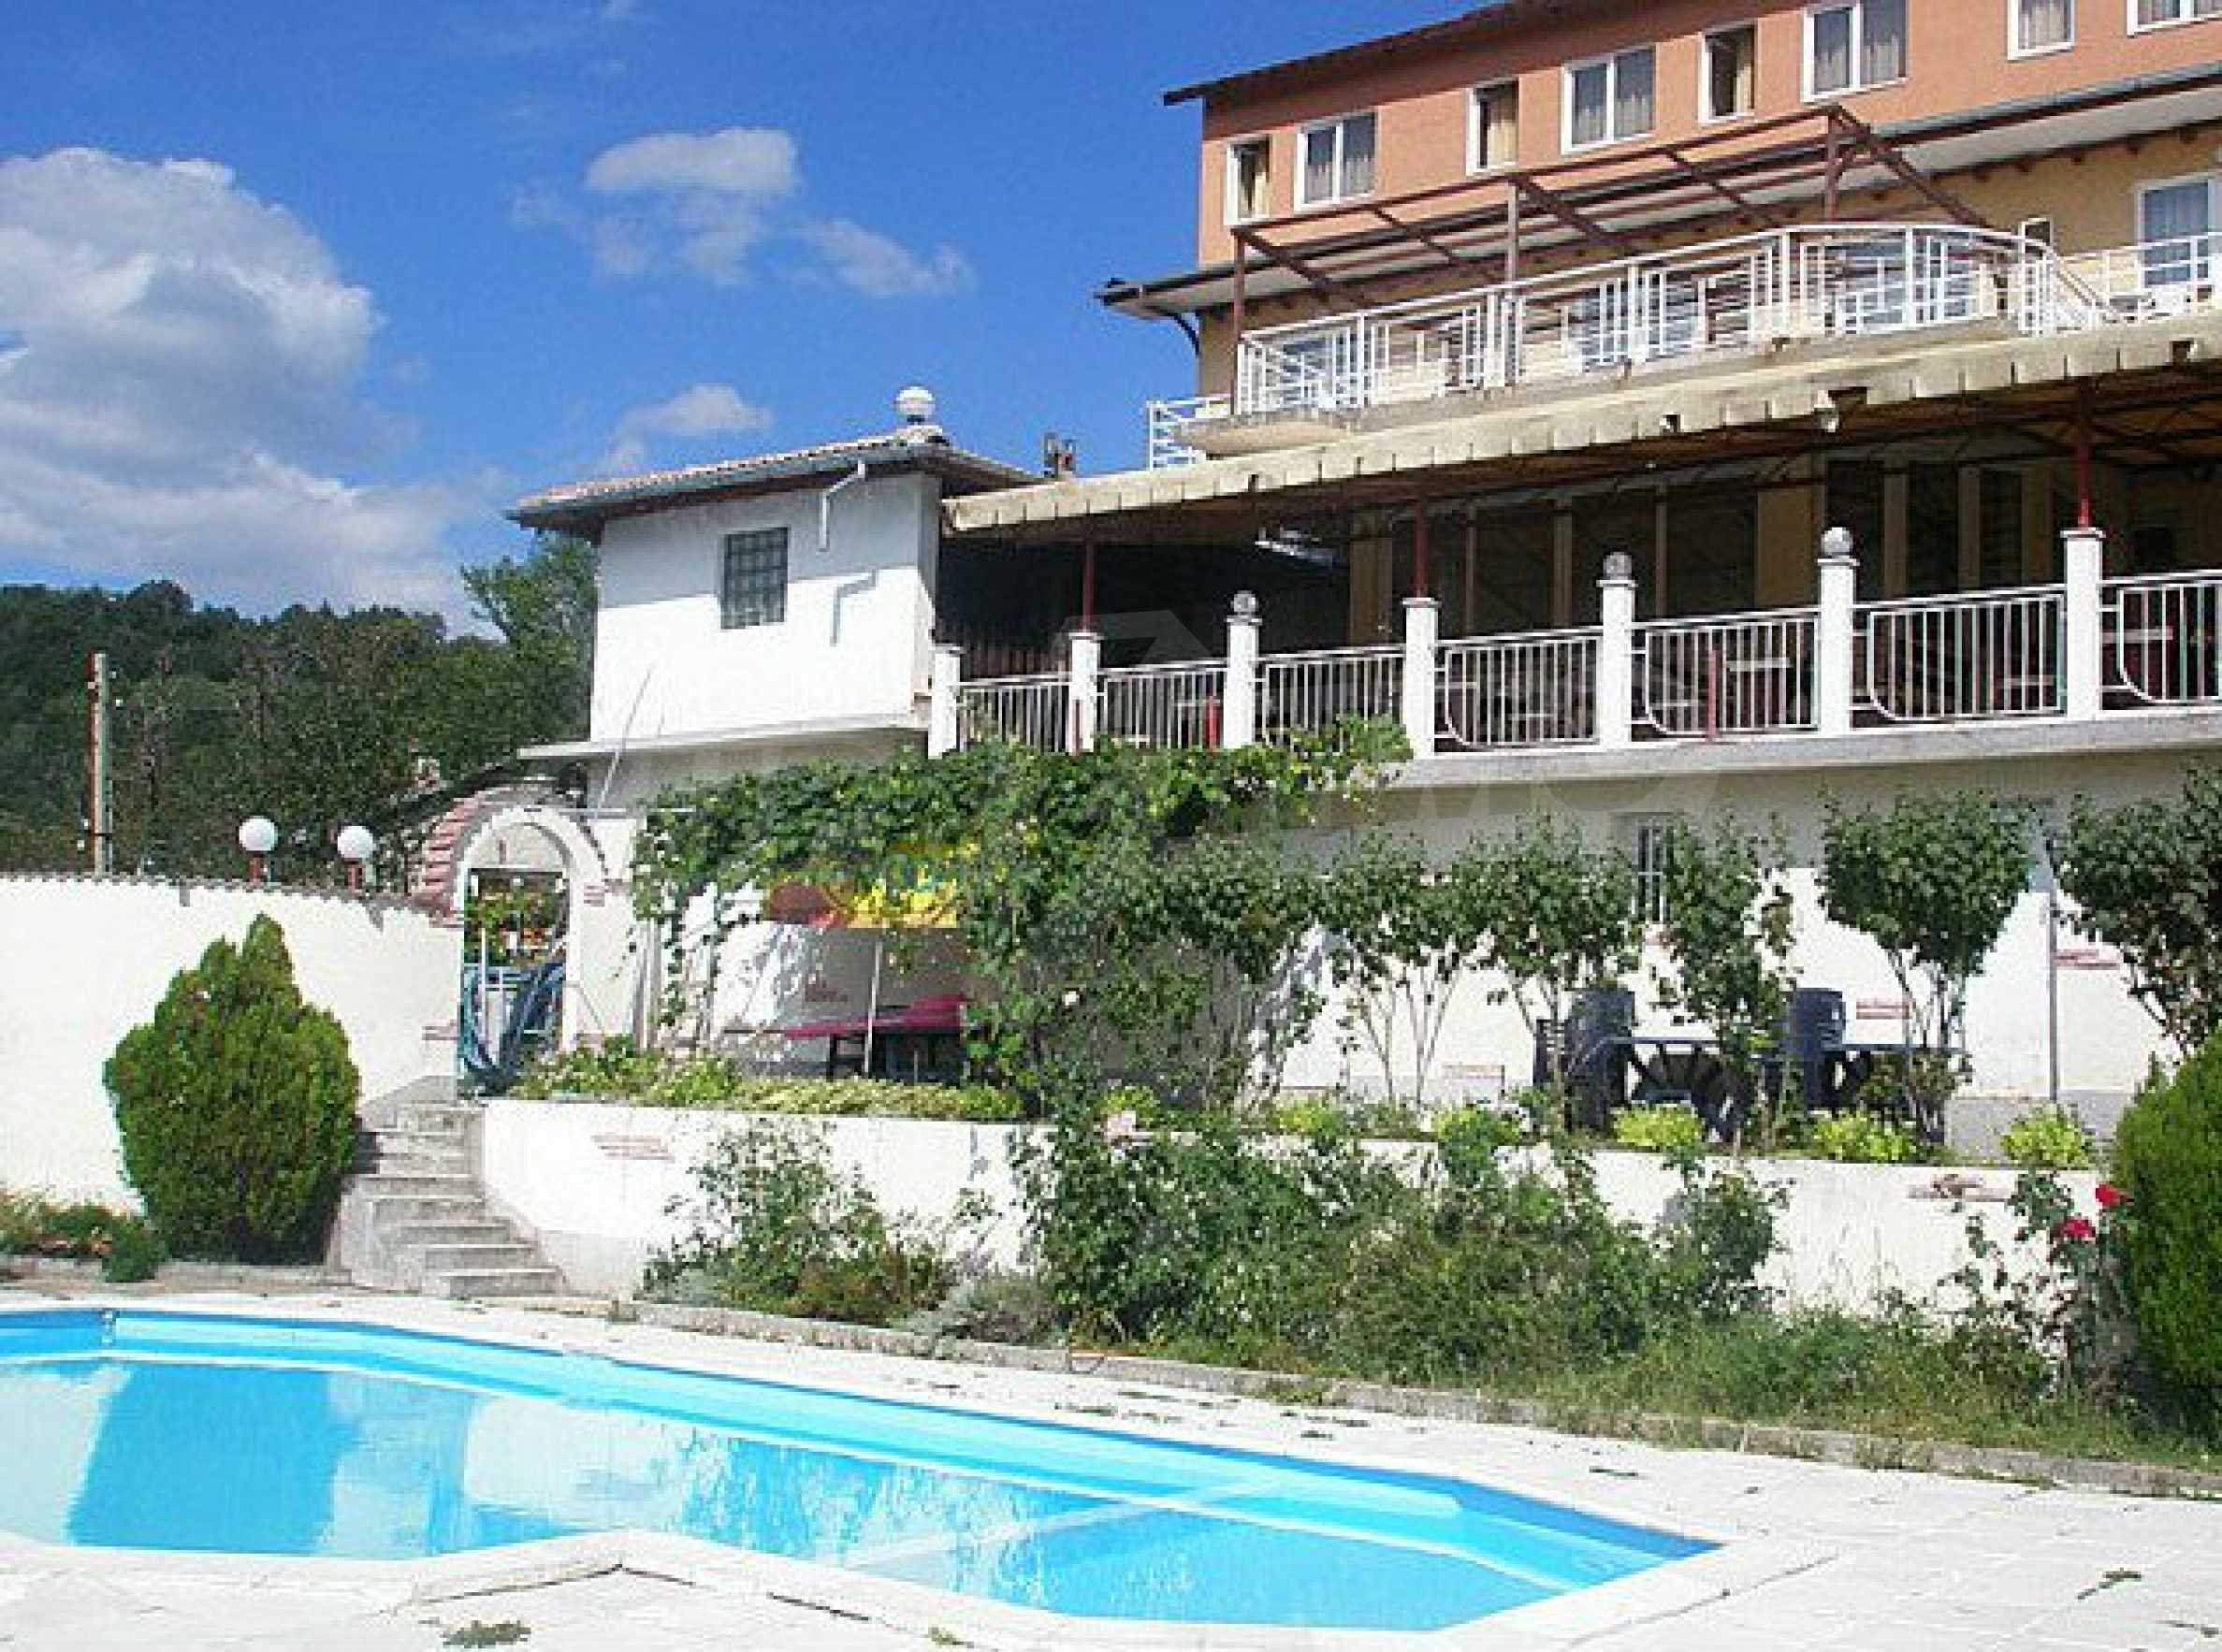 Operating hotel with pool in the heart of Stara Planina Mountain